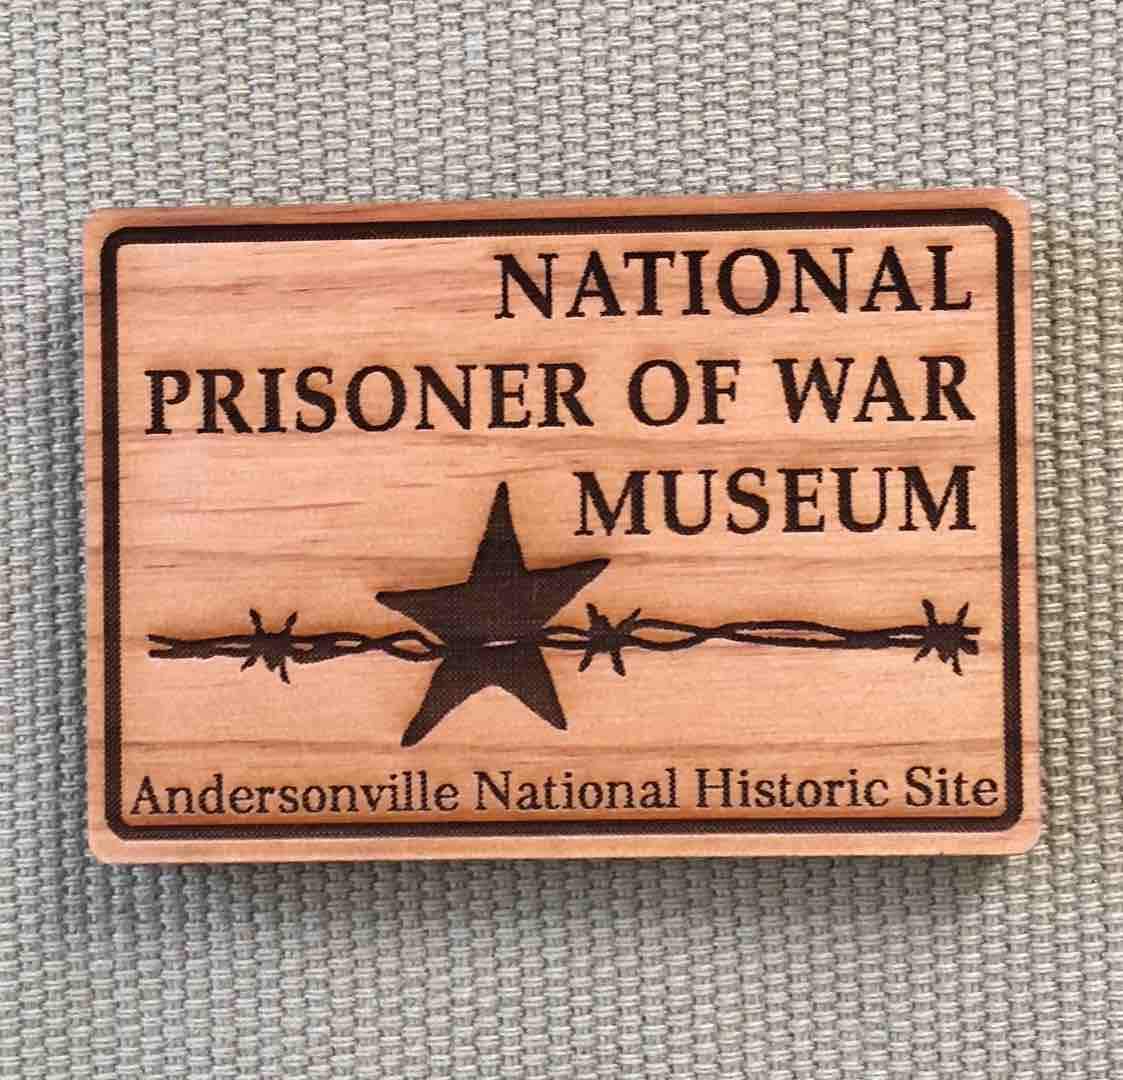 National Prisoner of War Museum